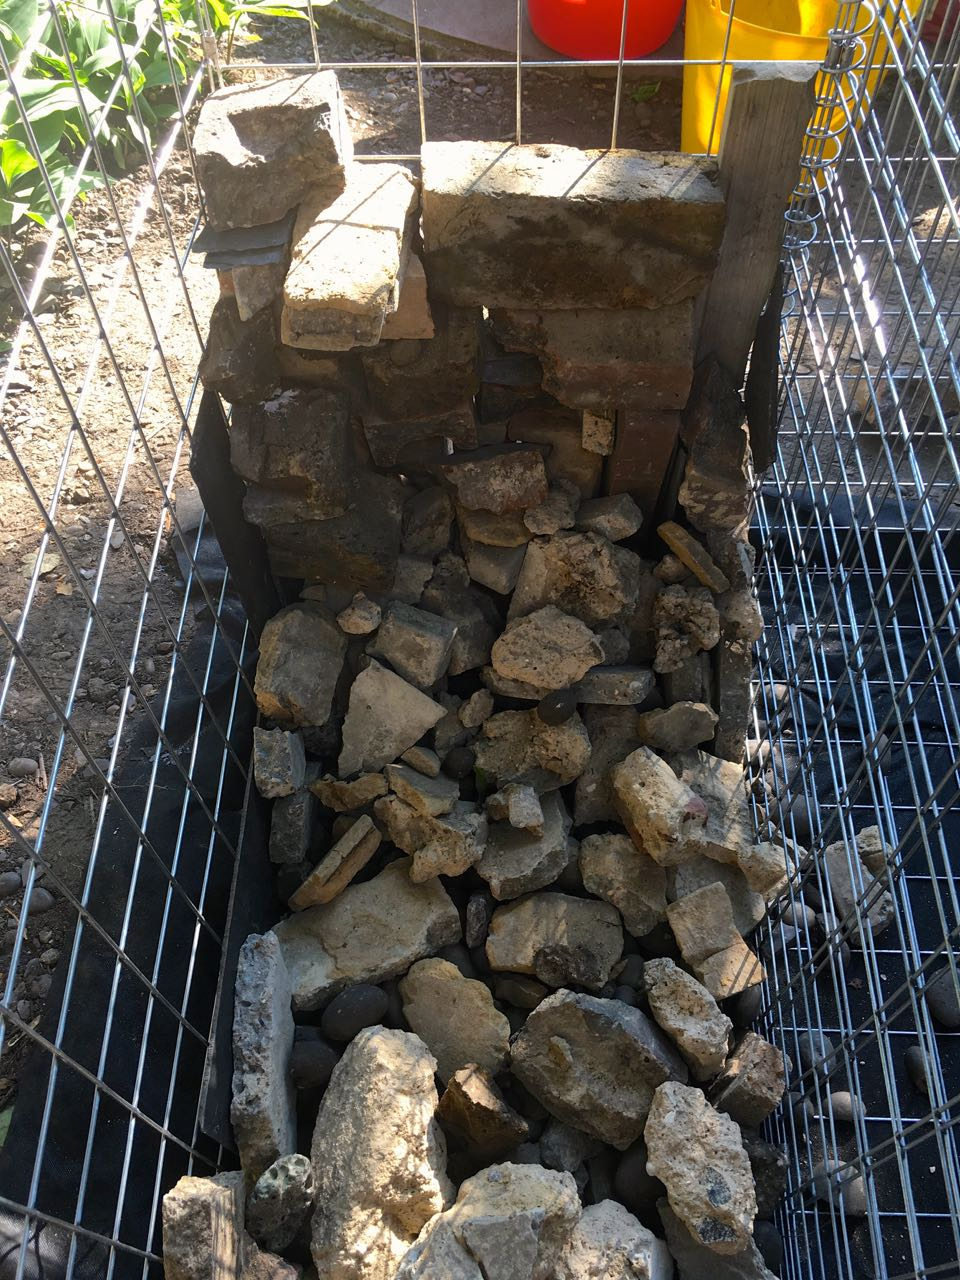 Starting to fill our gabion baskets with bricks and rubble sourced from freecycle